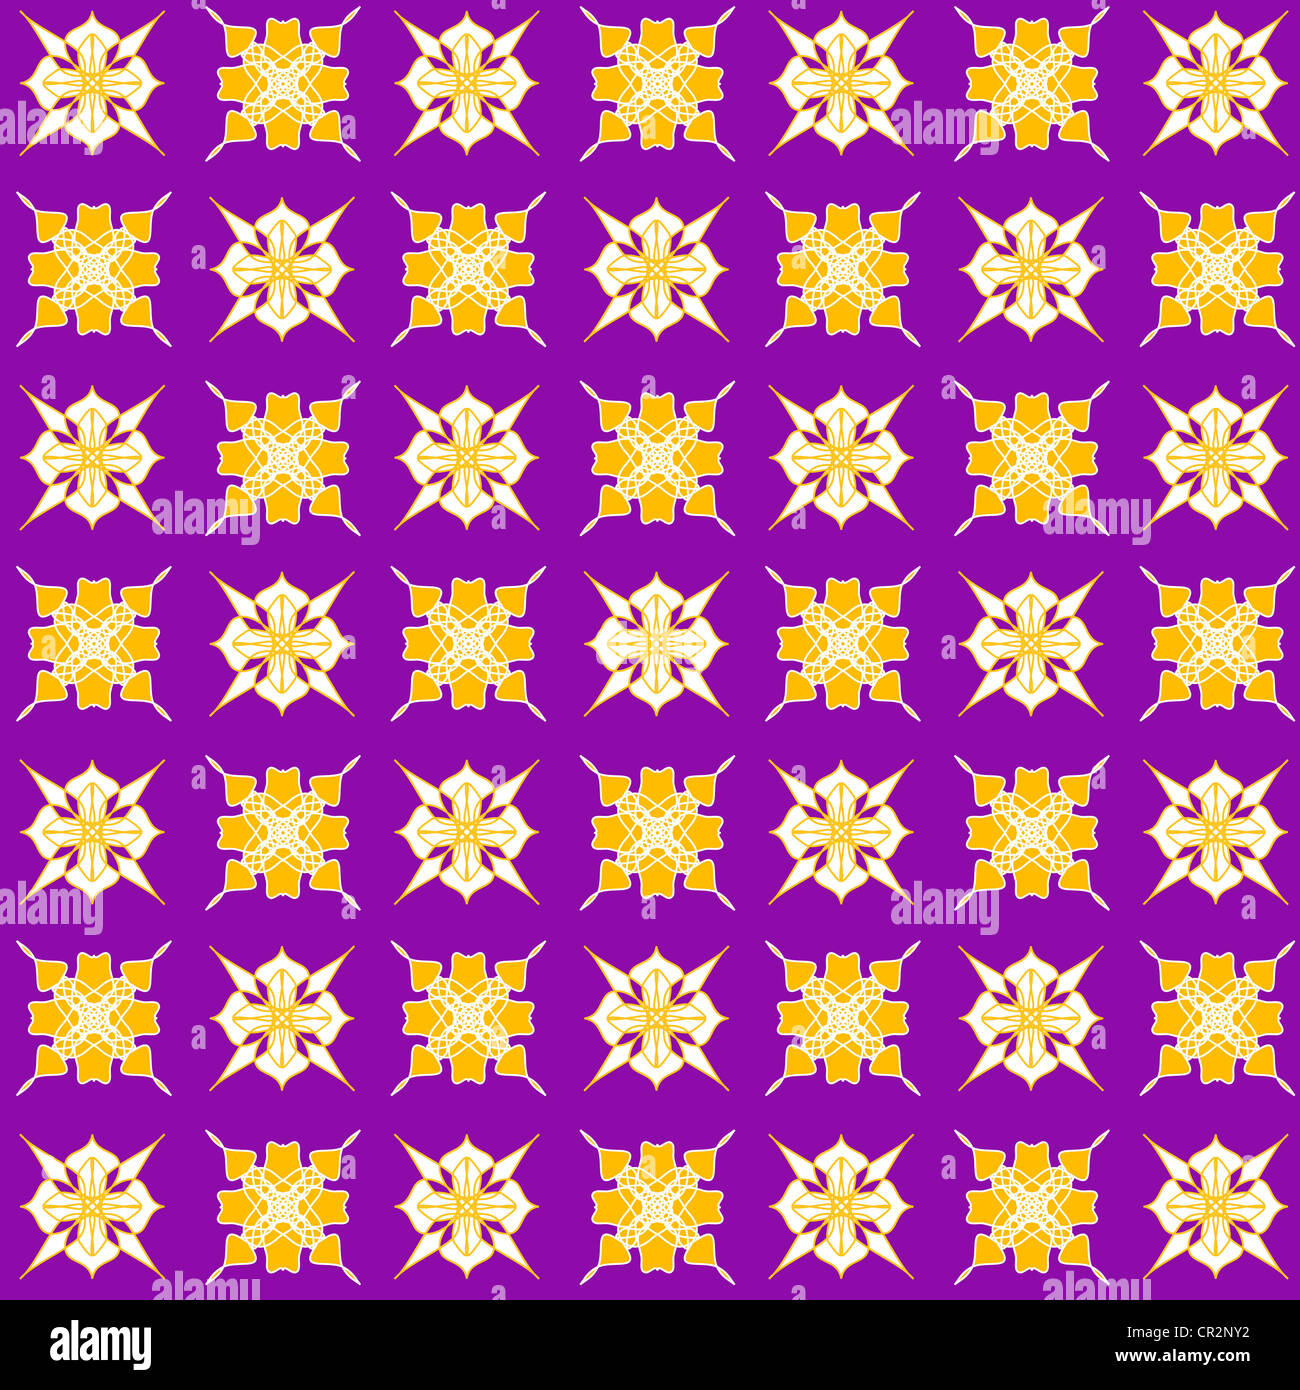 Artistic stars and floral pattern on purple Stock Photo